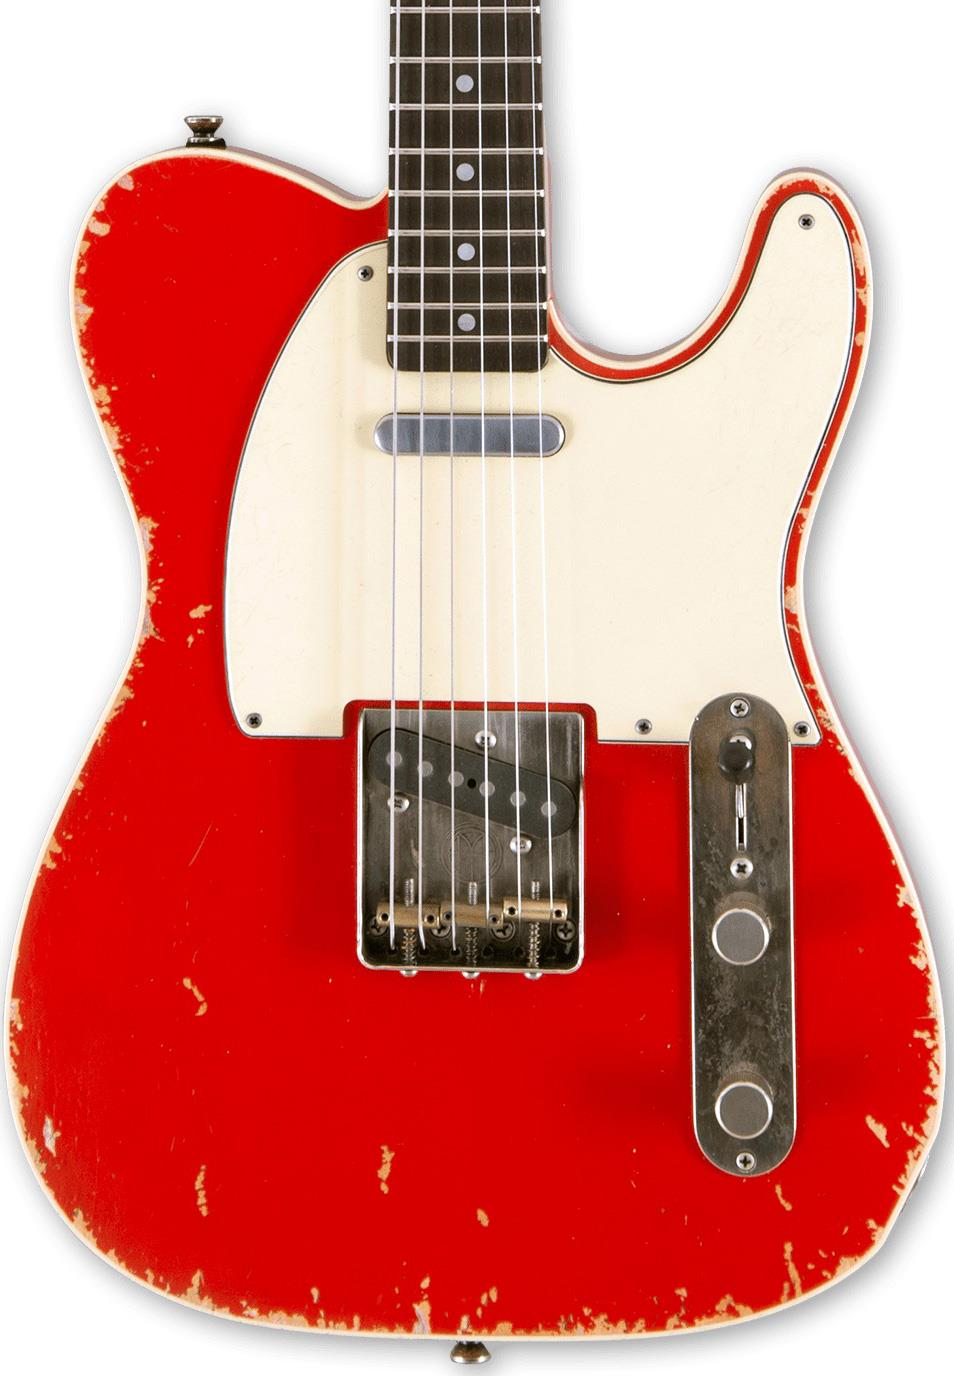 maybach teleman t61 red rooster aged custom shop | keymusic